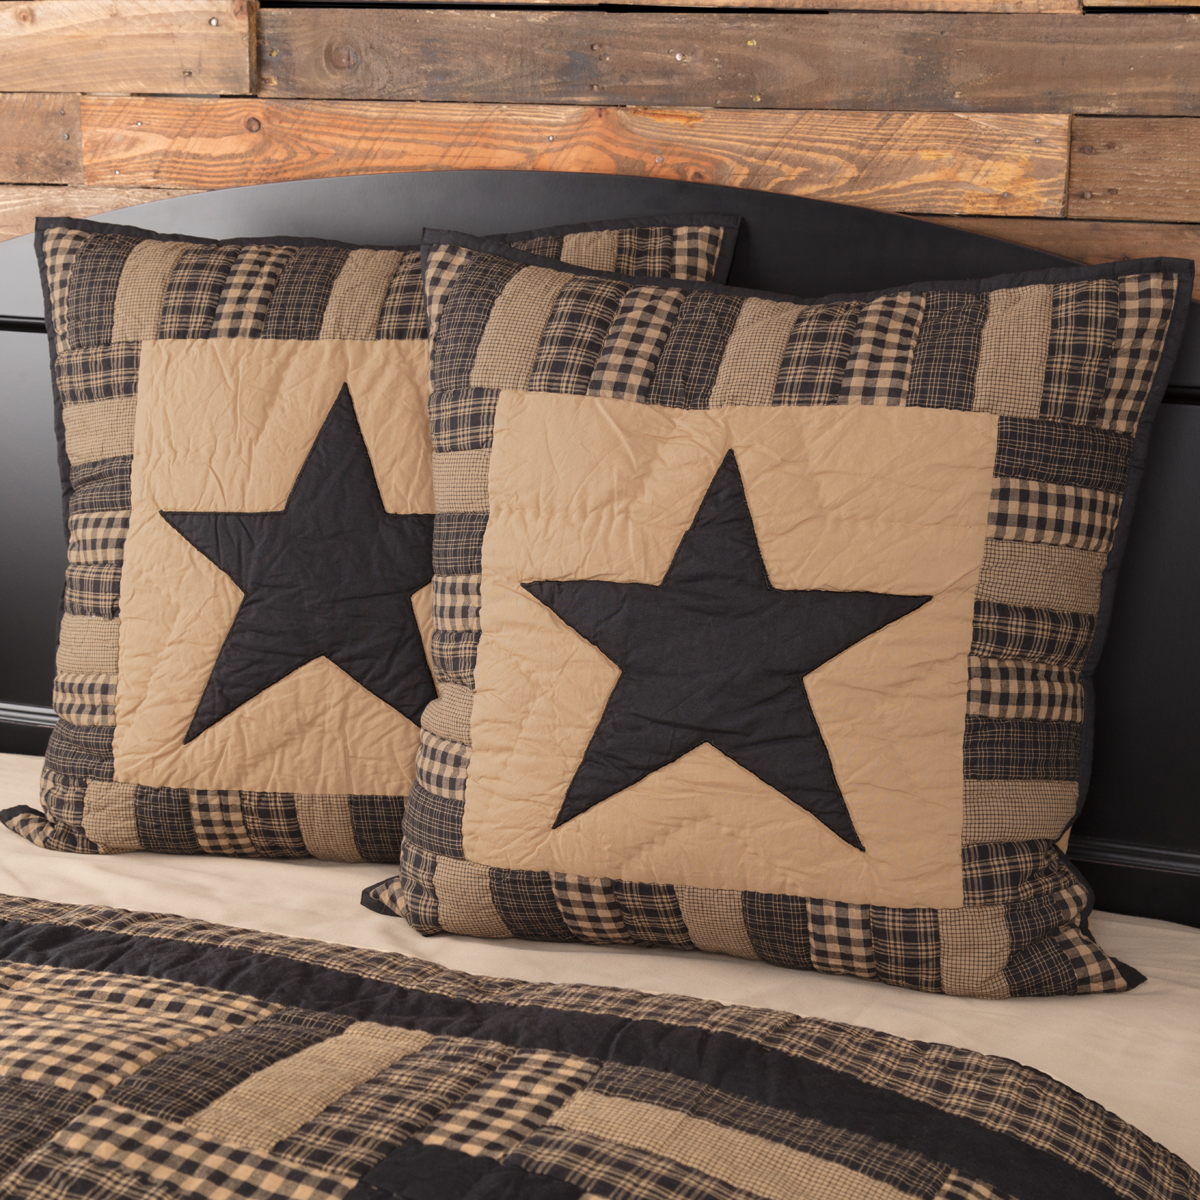 Raven Black Primitive Bedding Black Check Star Cotton Hand Quilted Appliqued Star Euro Sham